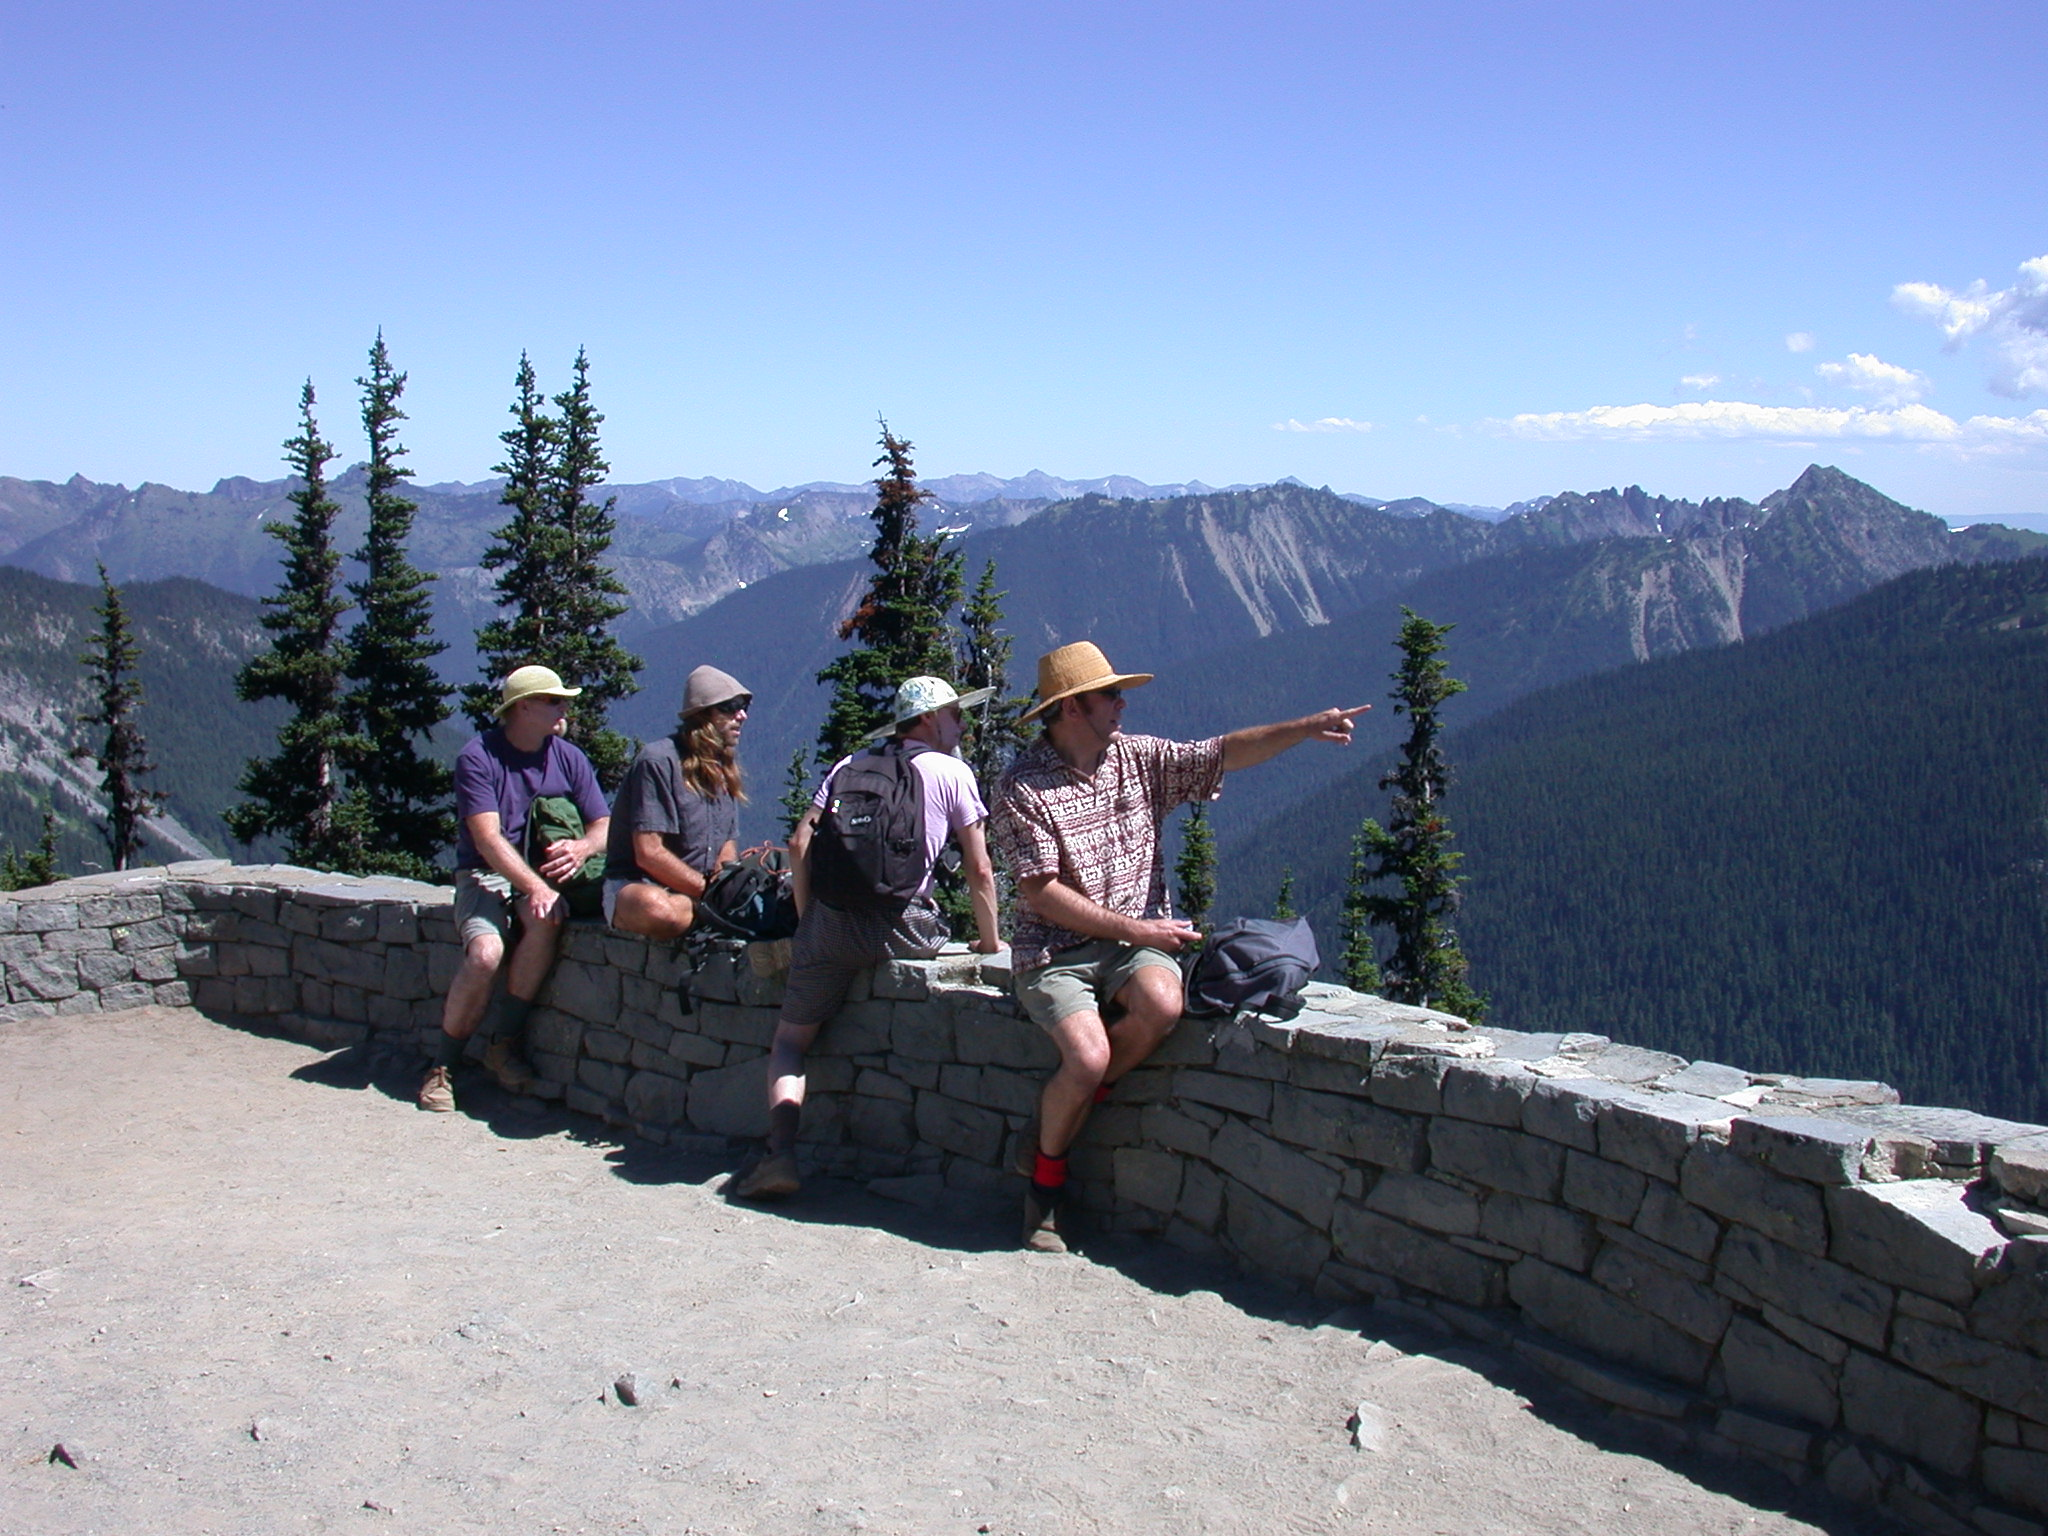 Dazzle, Mugwort, Sierra, and Tusk on Burroughs Trail Outlook of Mount Rainier